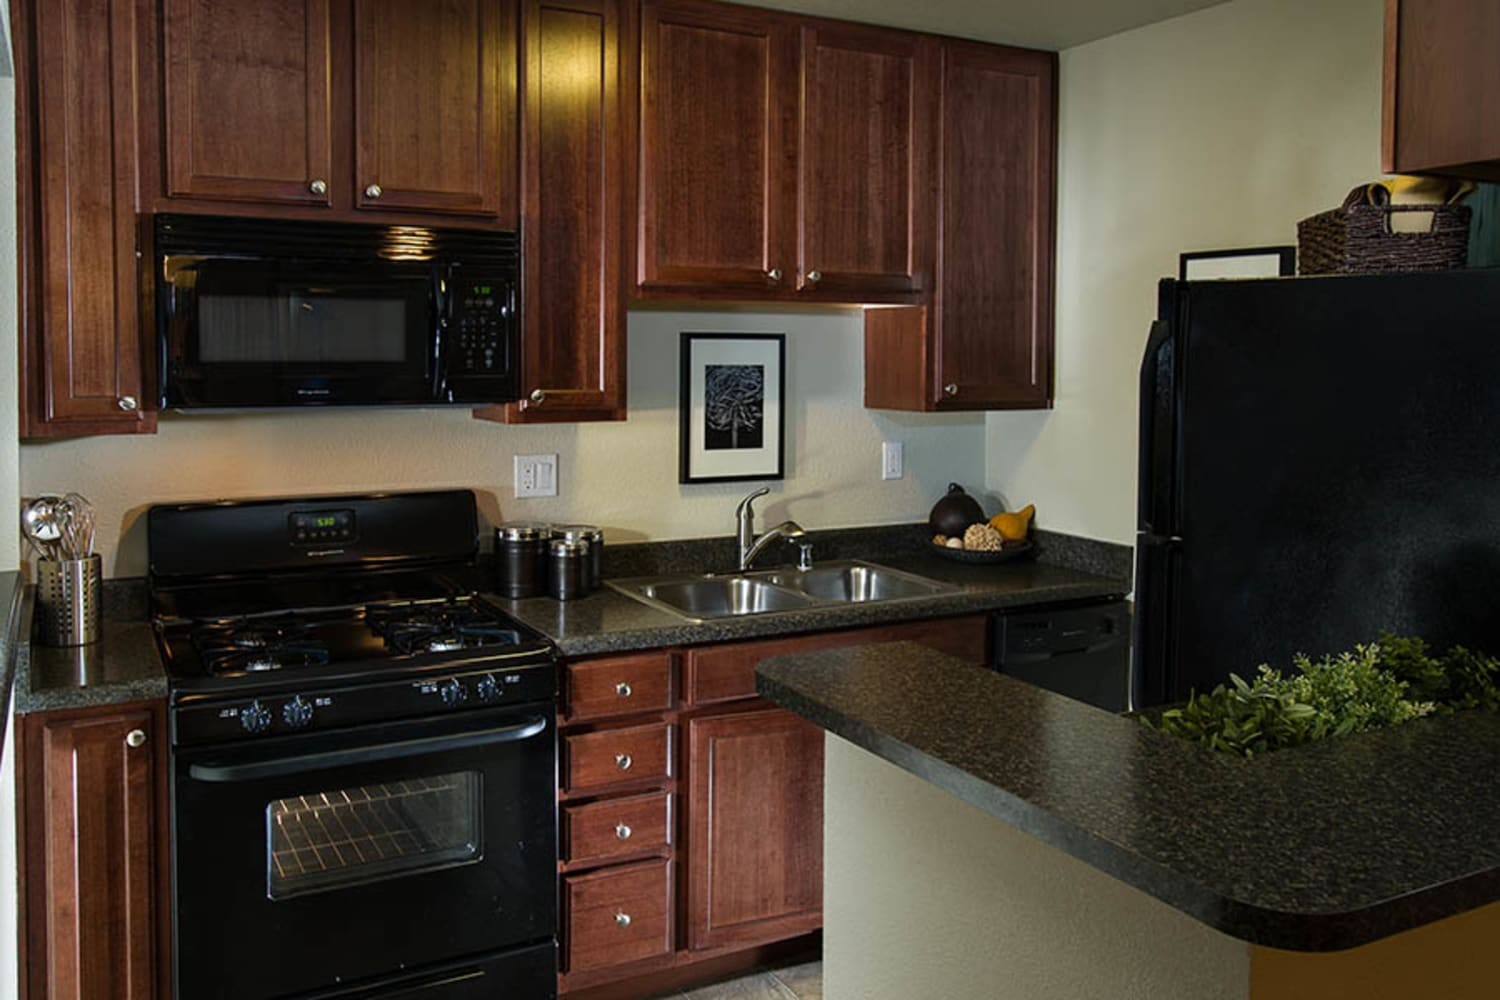 UCA Apartment Homes in Fullerton, California, offer upgraded kitchens